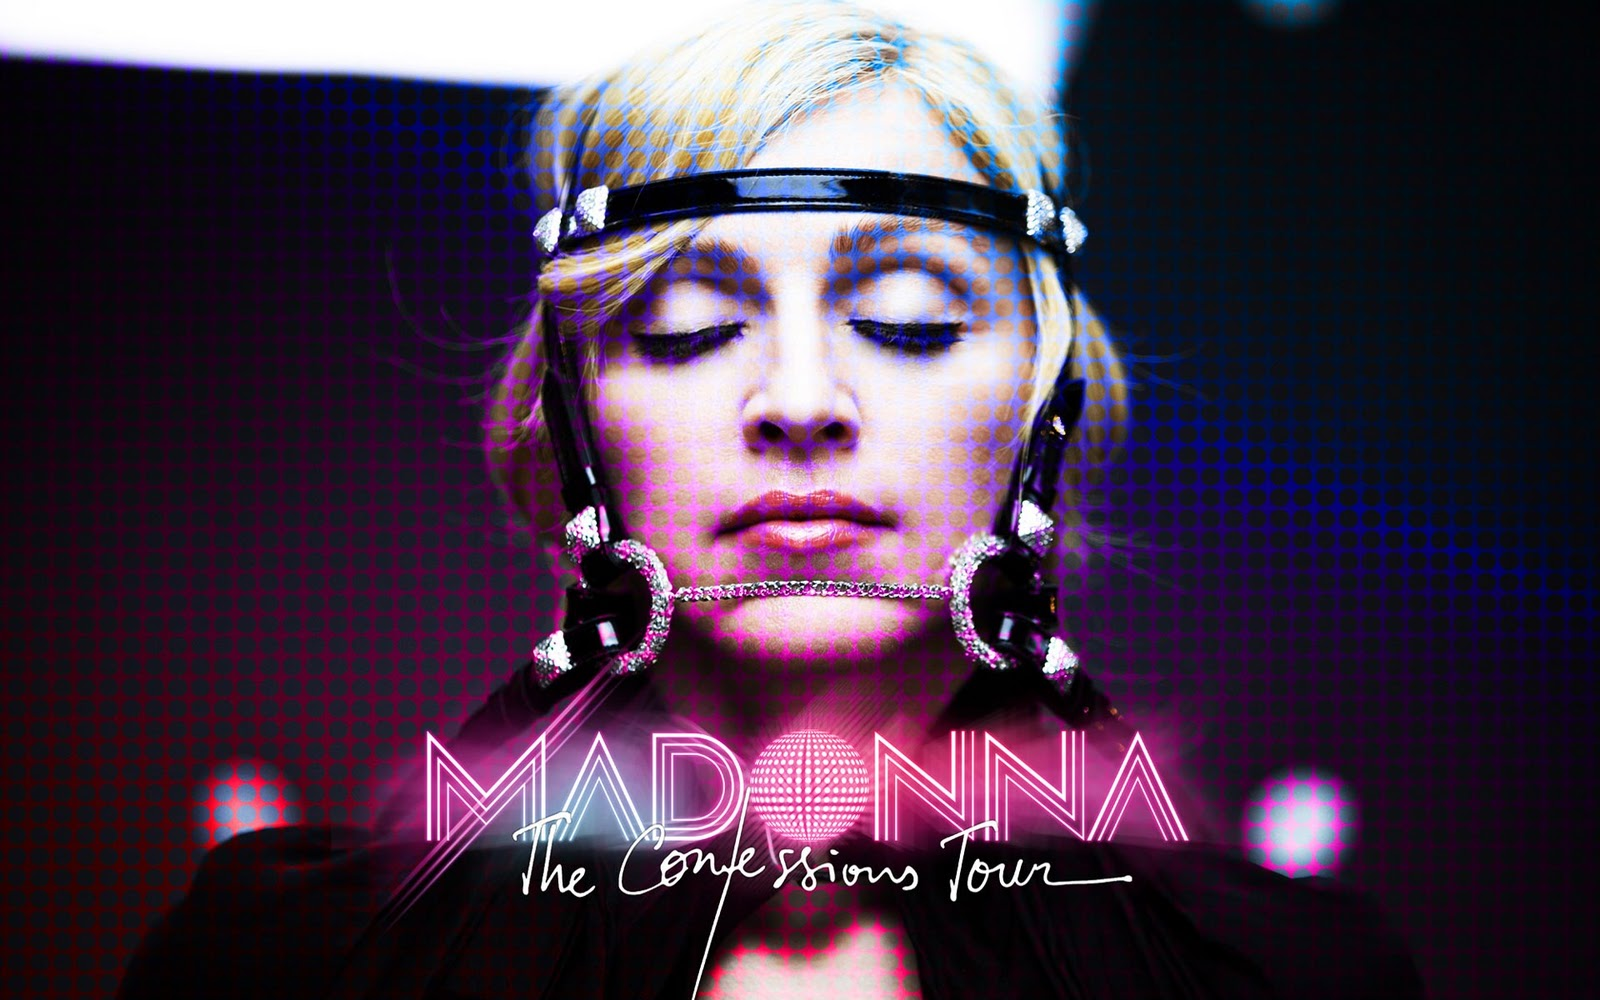 s1600madonna wallpapers 19 madonna confessions tour wallpaperjpg 1600x1000